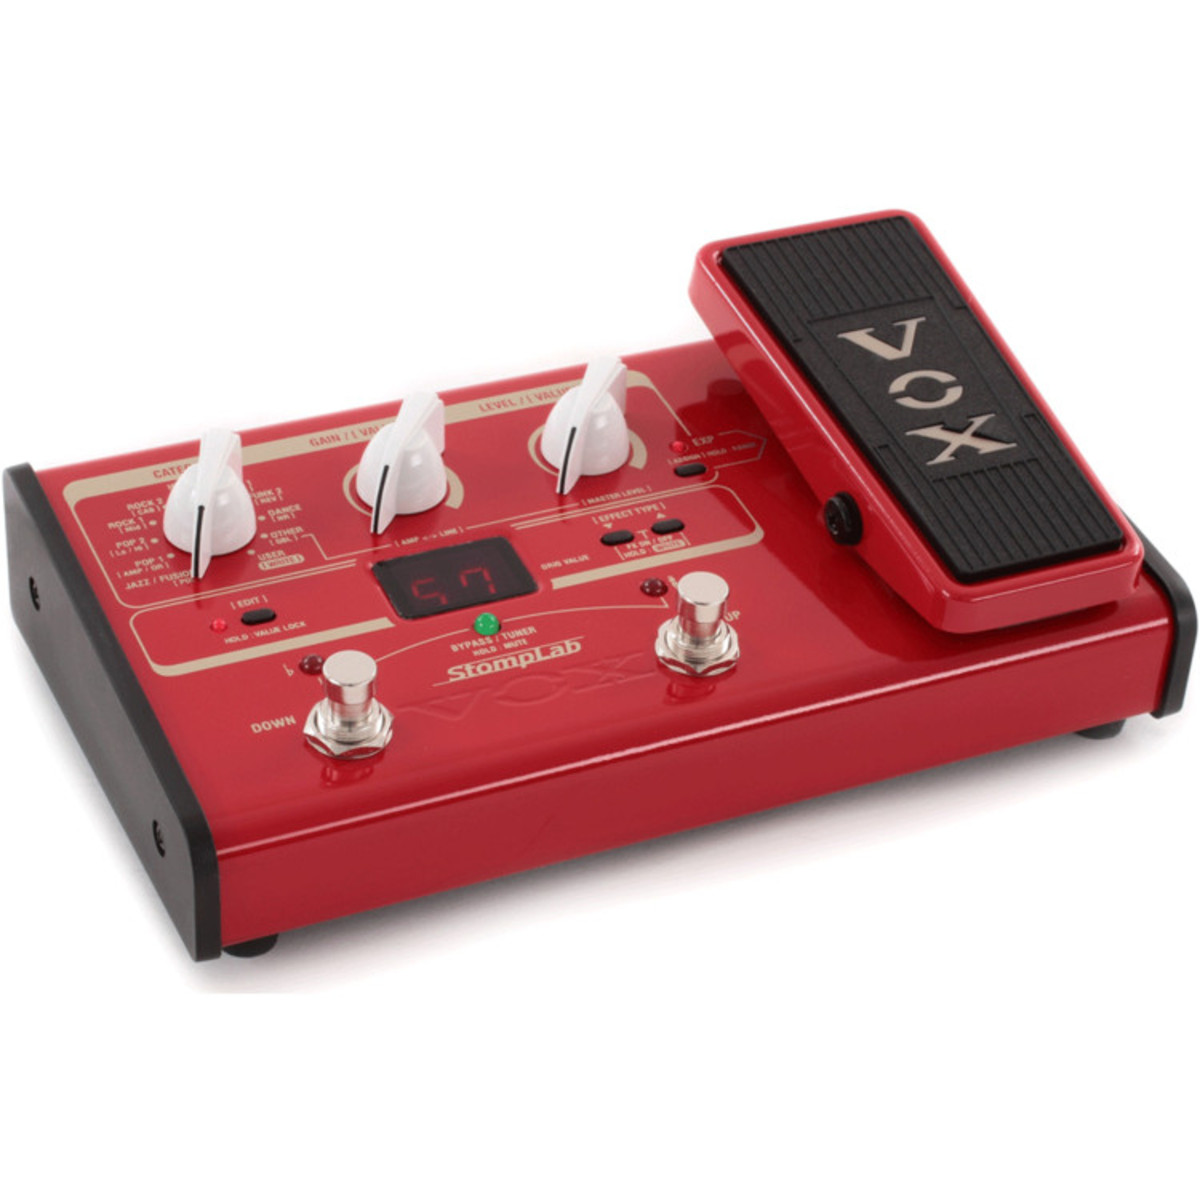 vox stomplab iib bass guitar multi effects with expression pedal at gear4music